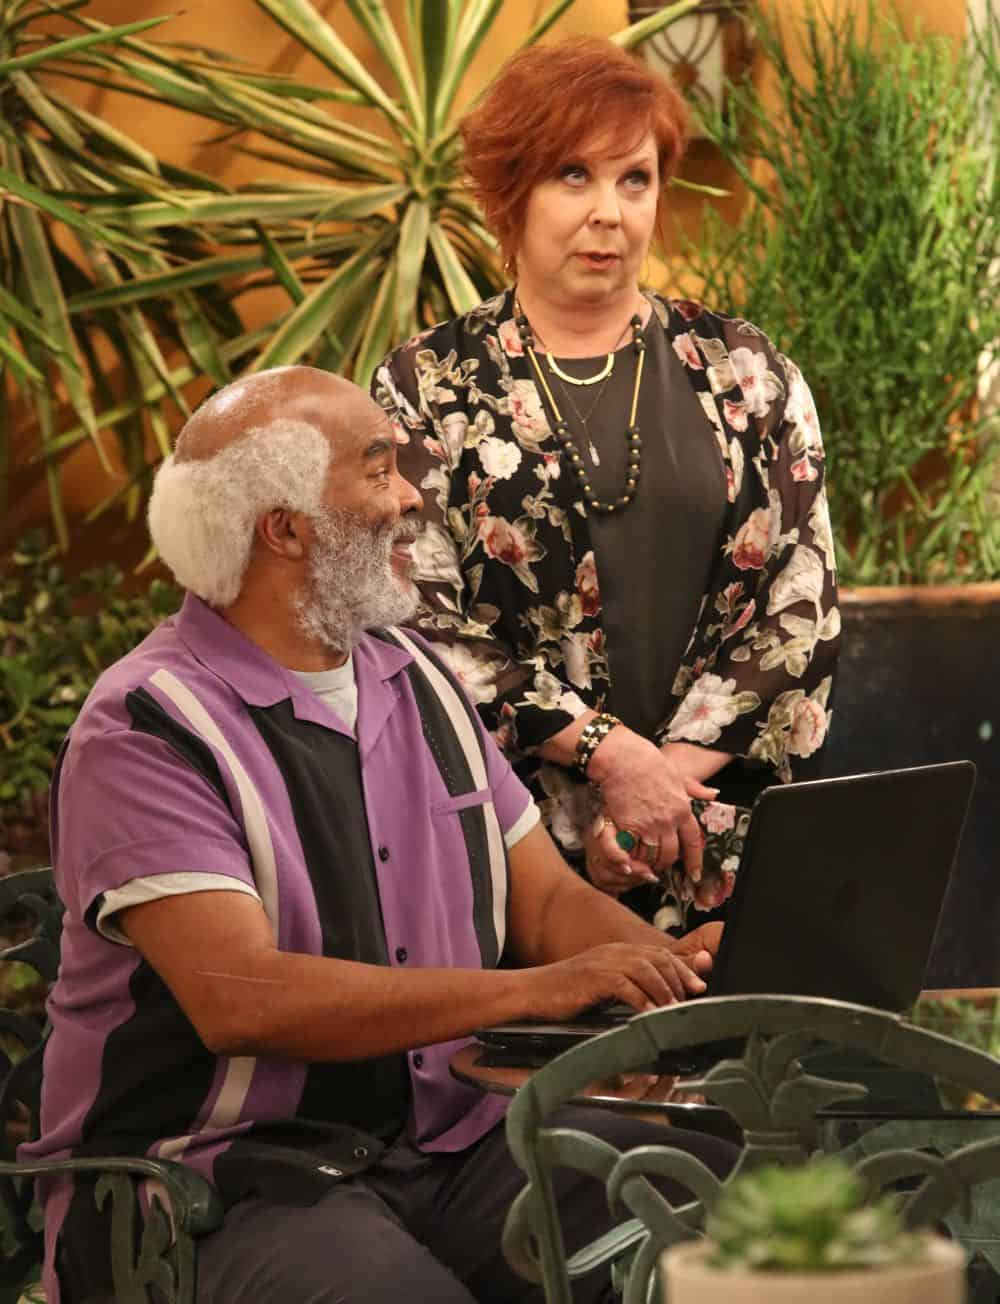 """THE COOL KIDS: L-R: David Alan Grier and Vicki Lawrence in the """"A Date With Destiny"""" episode of THE COOL KIDS airing Friday, Oct. 12 (8:30-9:00 PM ET/PT) on FOX. ©2018 Fox Broadcasting Co. Cr: Patrick McElhenney/FOX"""